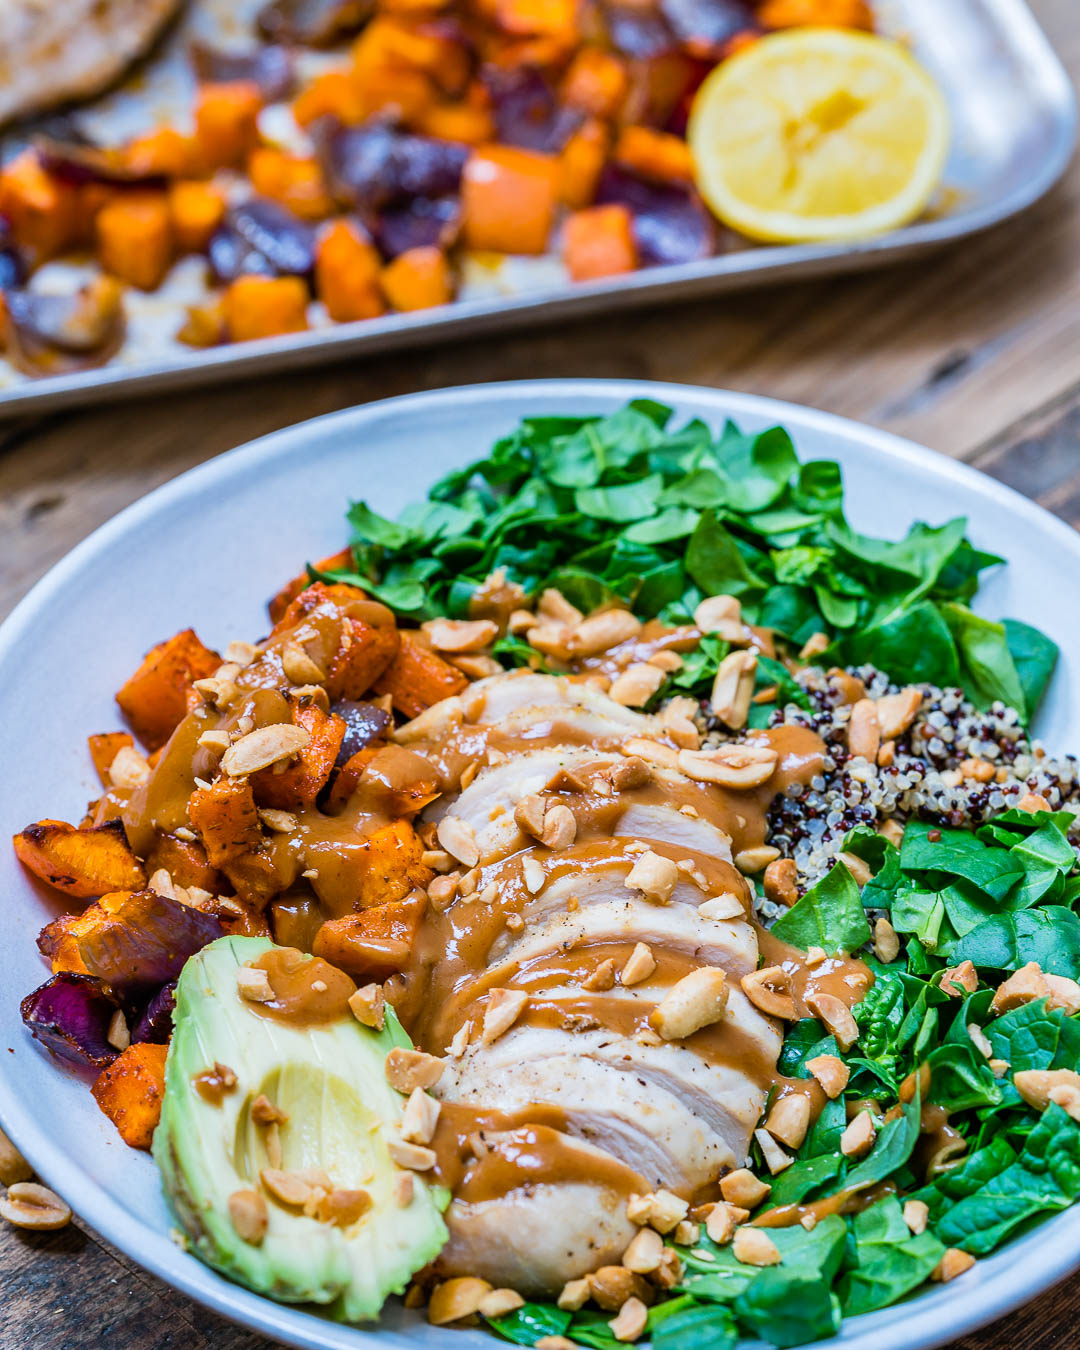 Easy Healthy Chicken Salad Recipe With Quinoa And Roasted Veggies